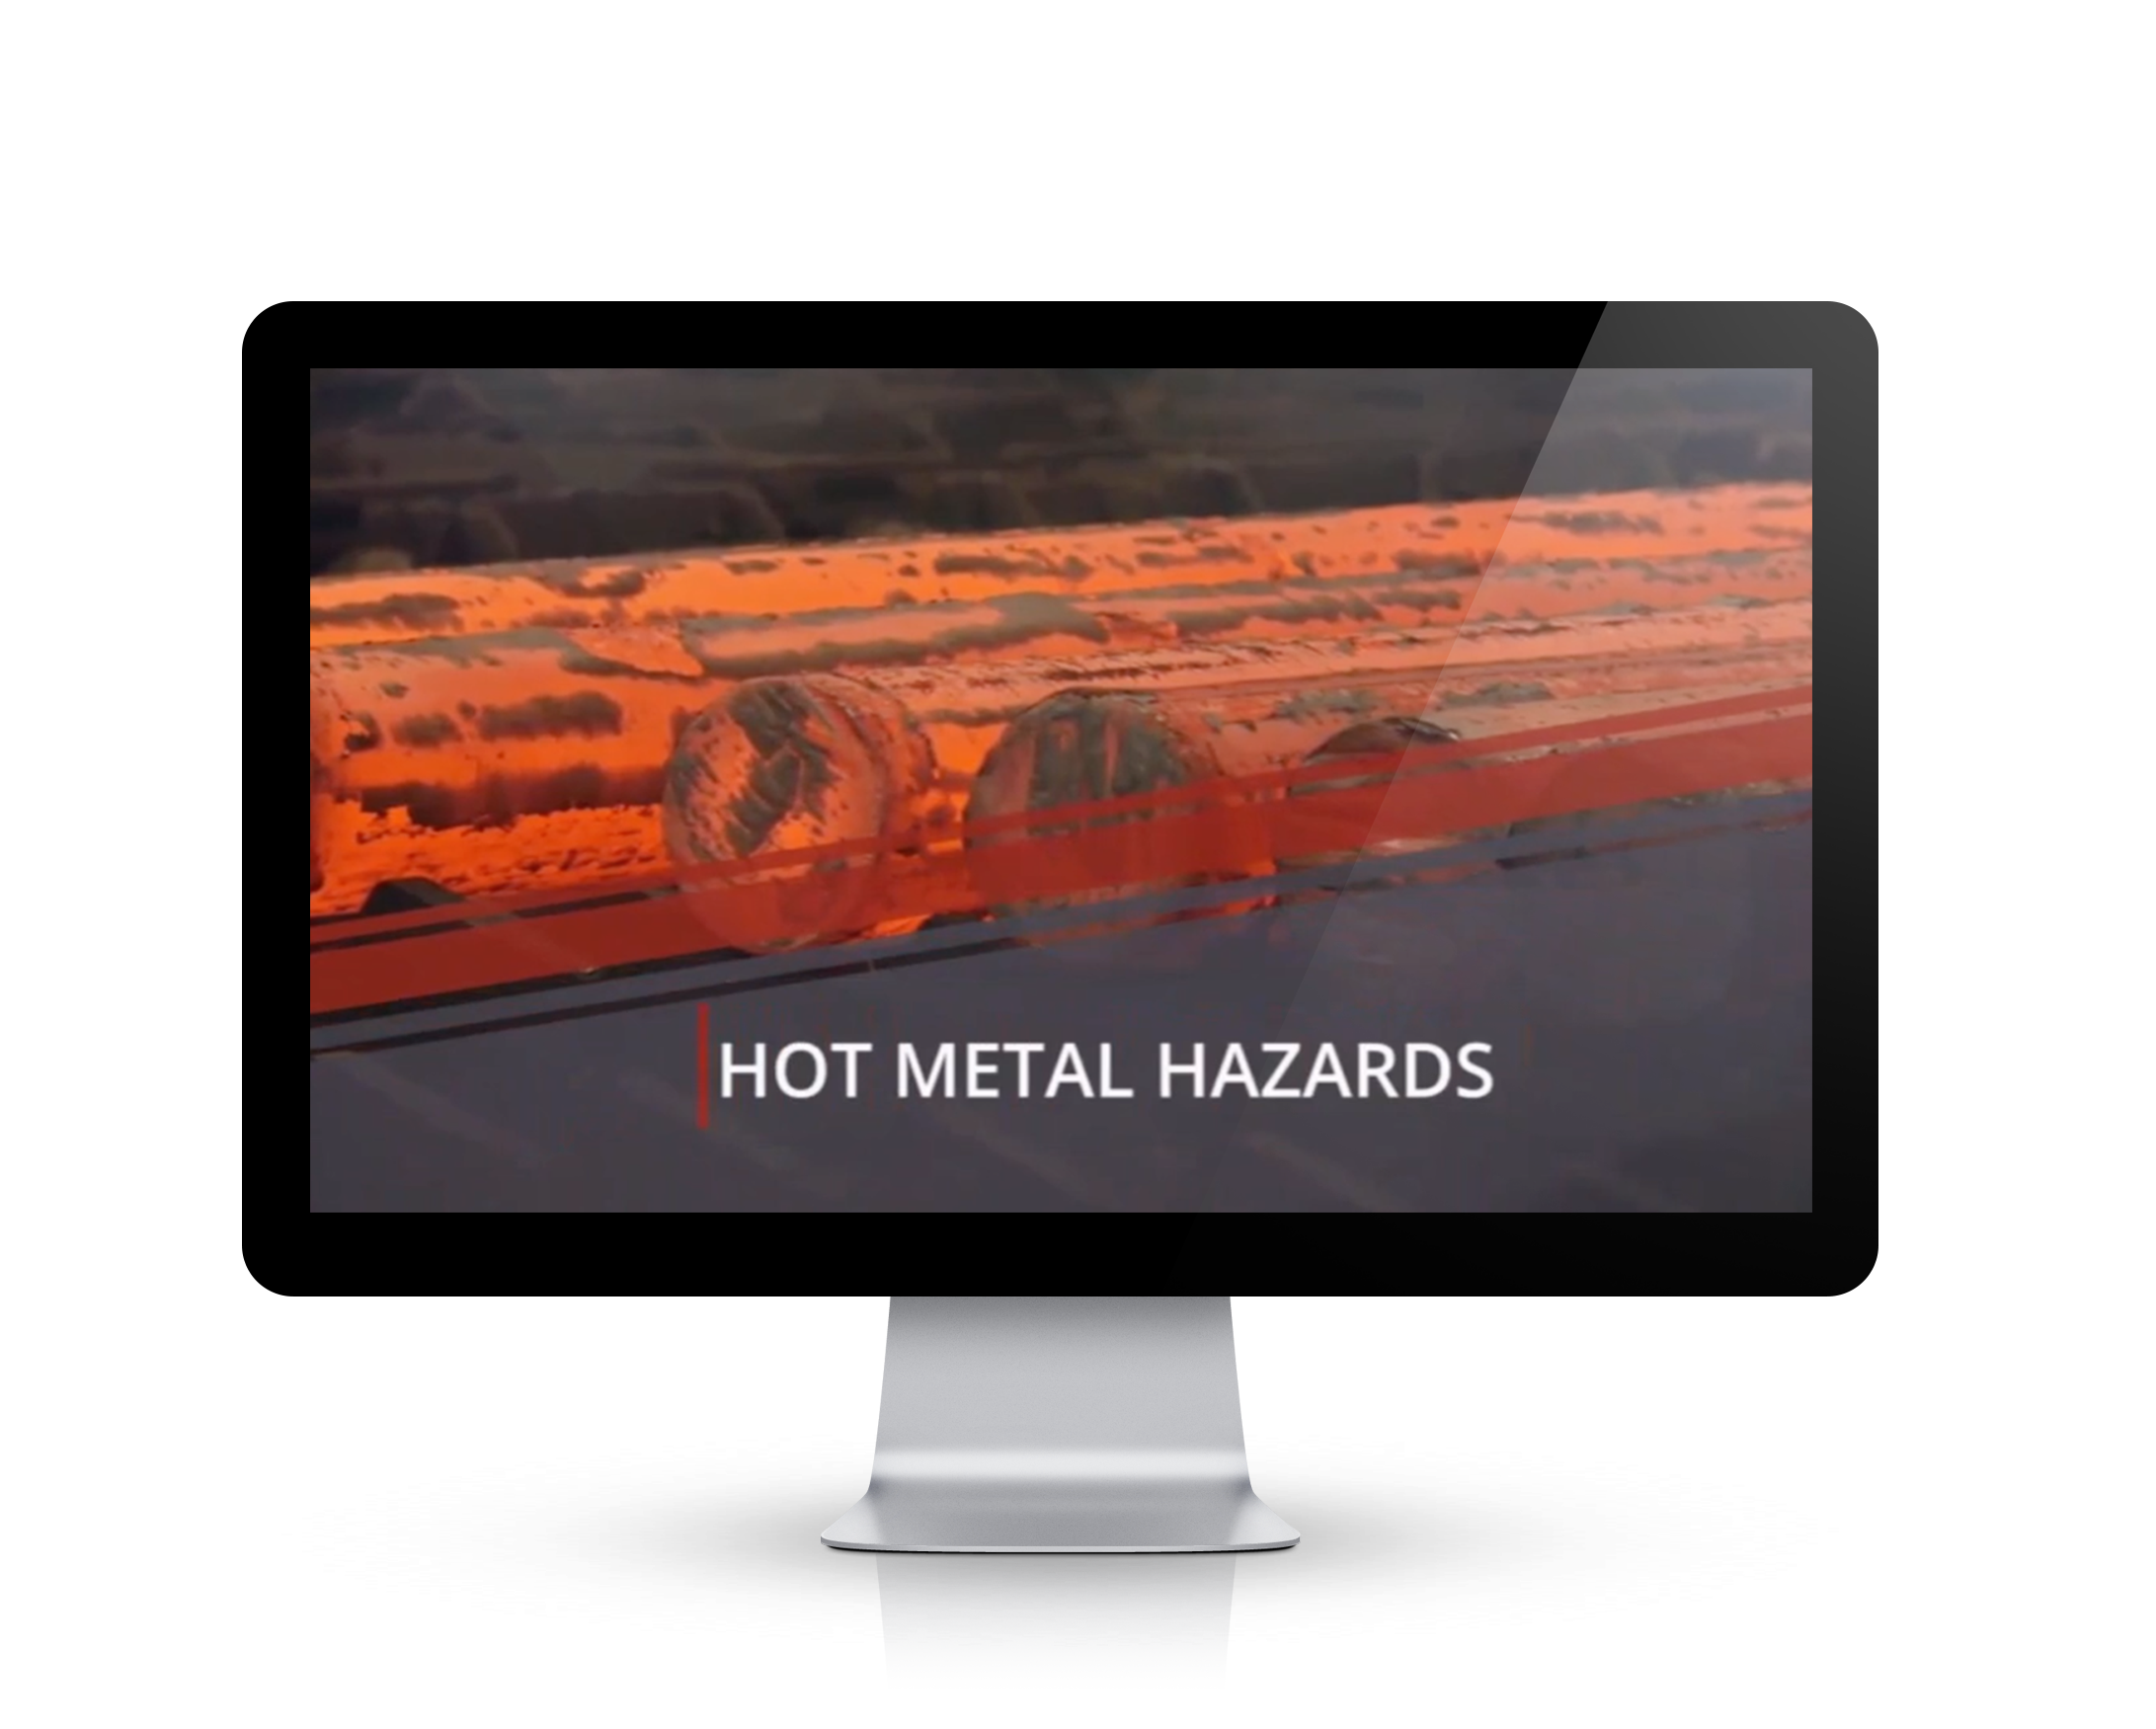 Hot Metals safety training screen shot on a Video Base